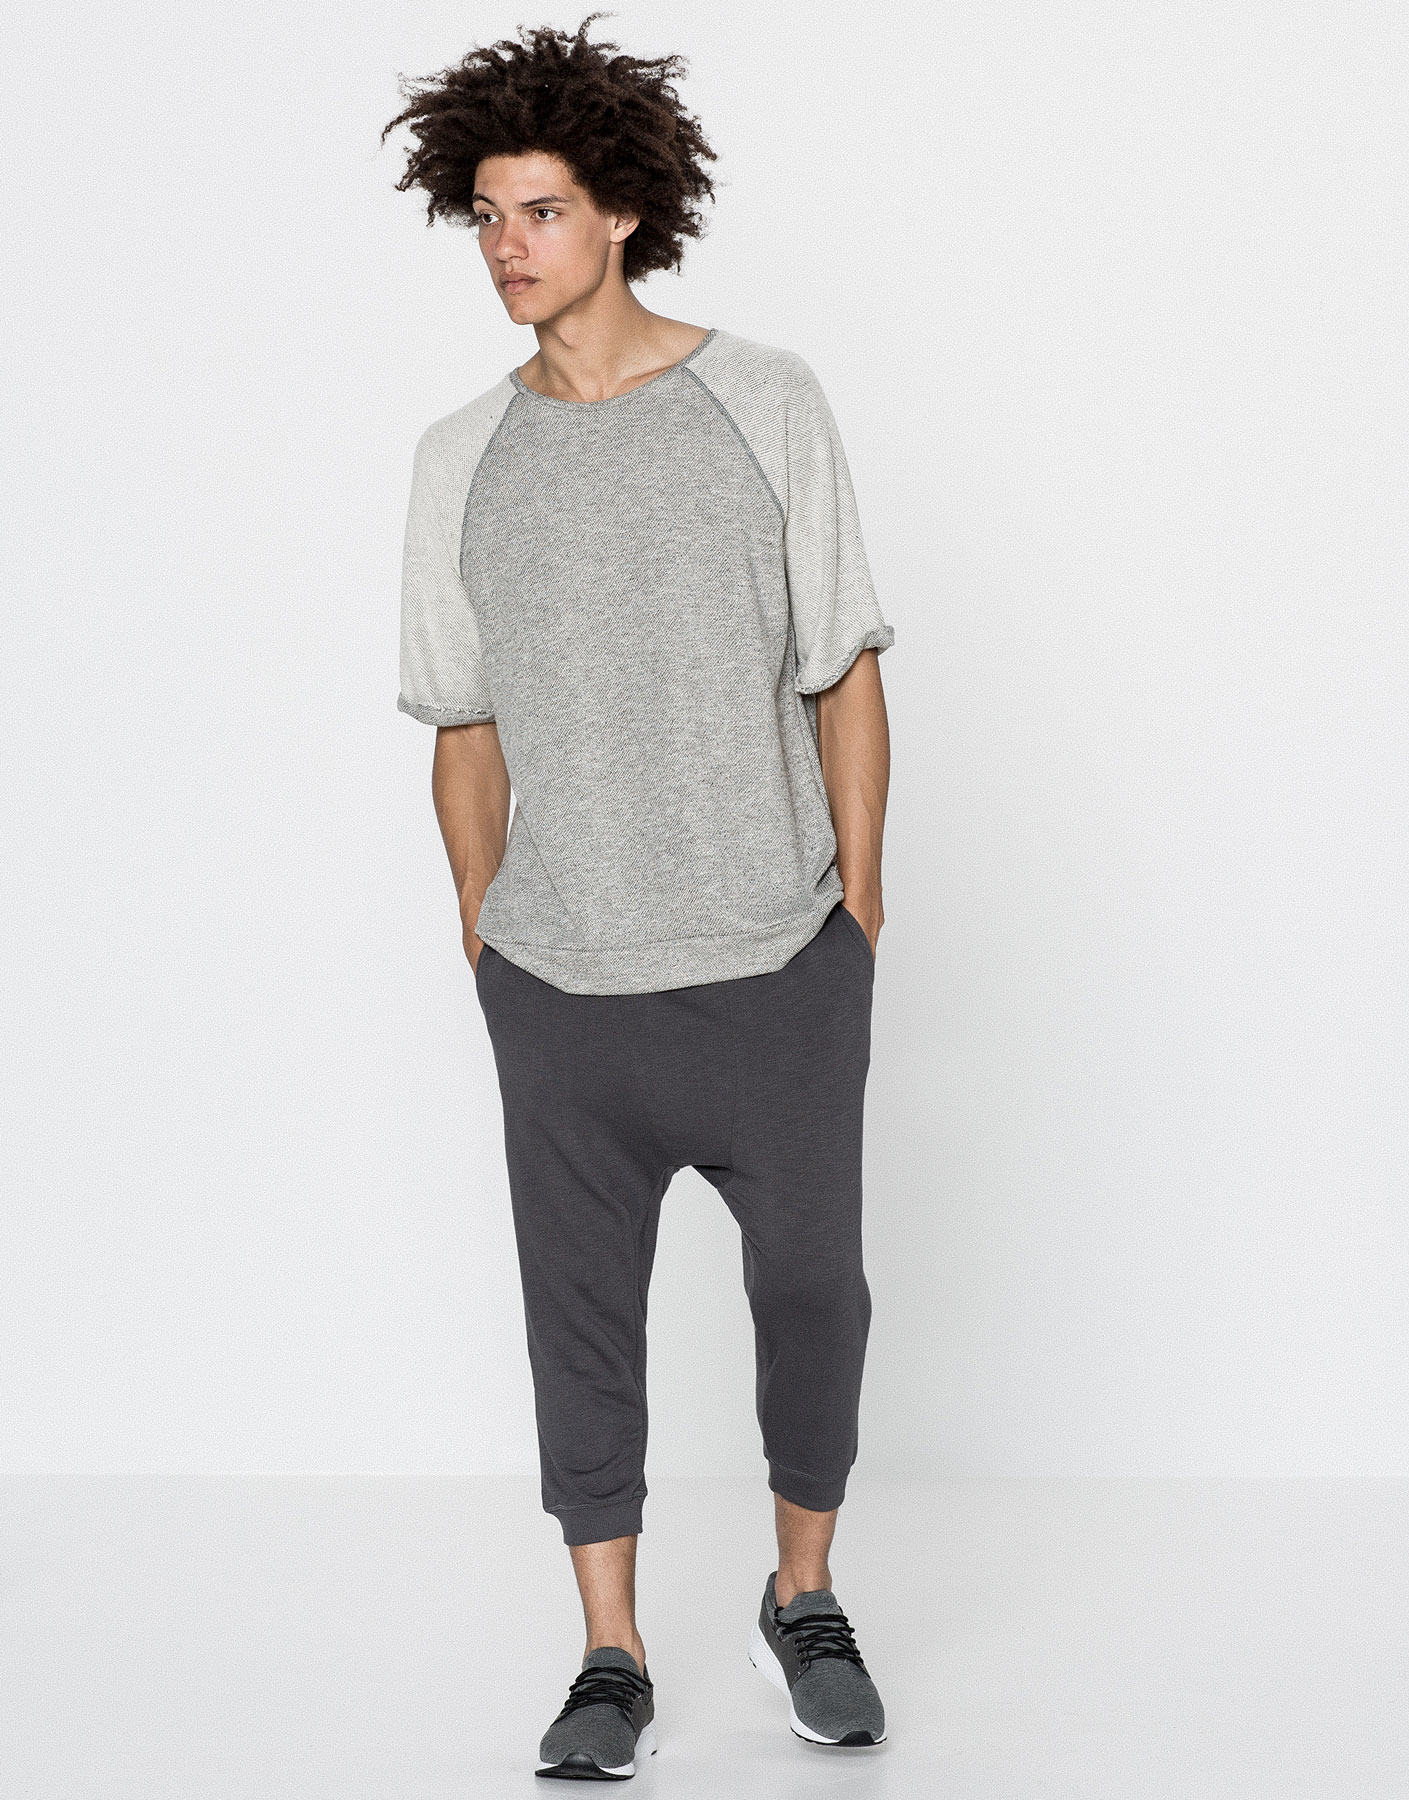 Flammé joggingbroek